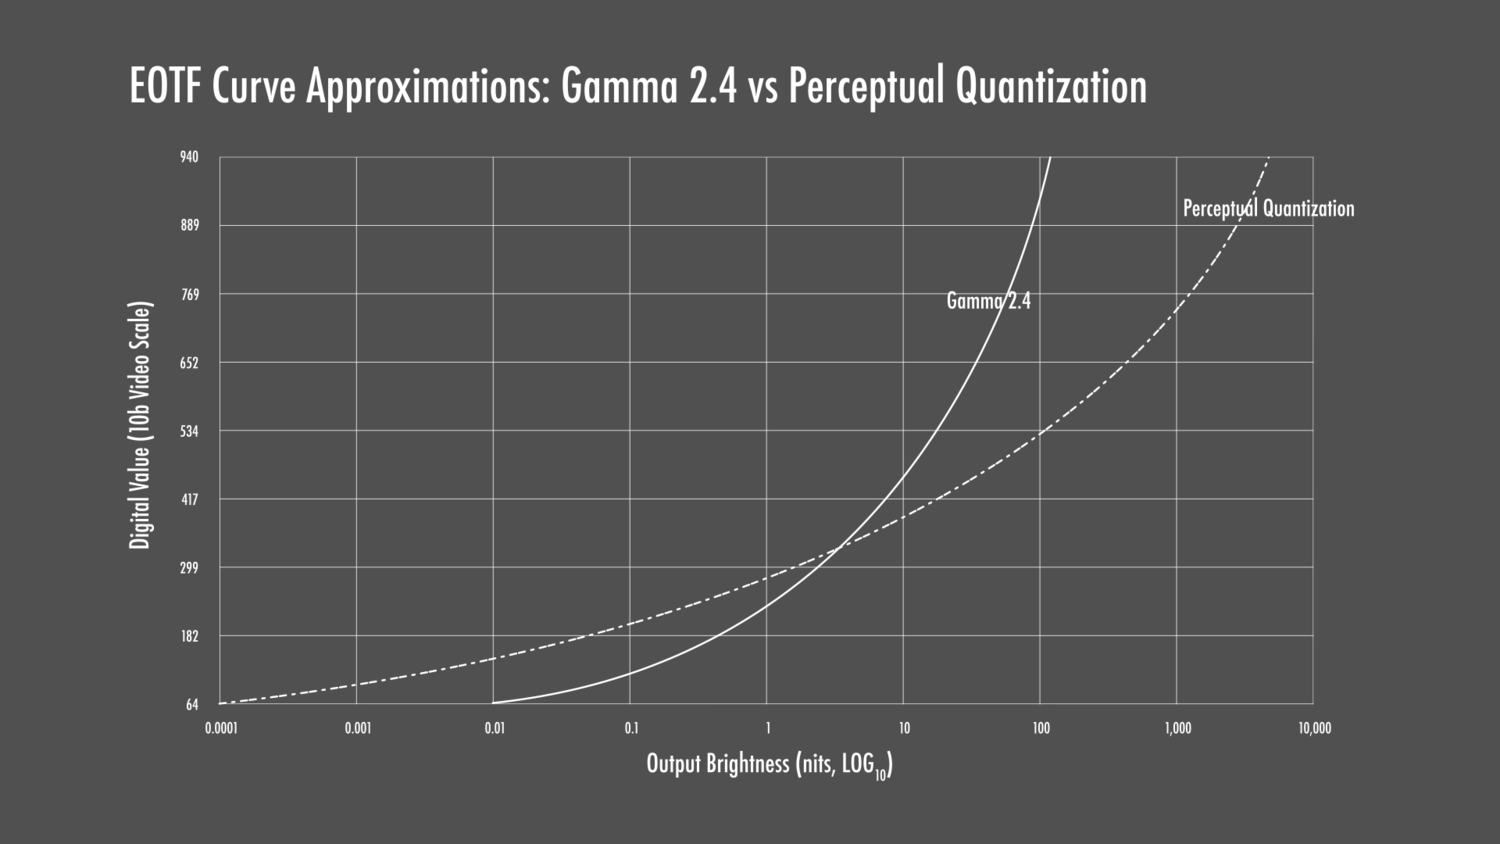 Perceptual Quantization (PQ) Electro-Optical Transfer Function (EOTF) with Gamma 2.4 Reference